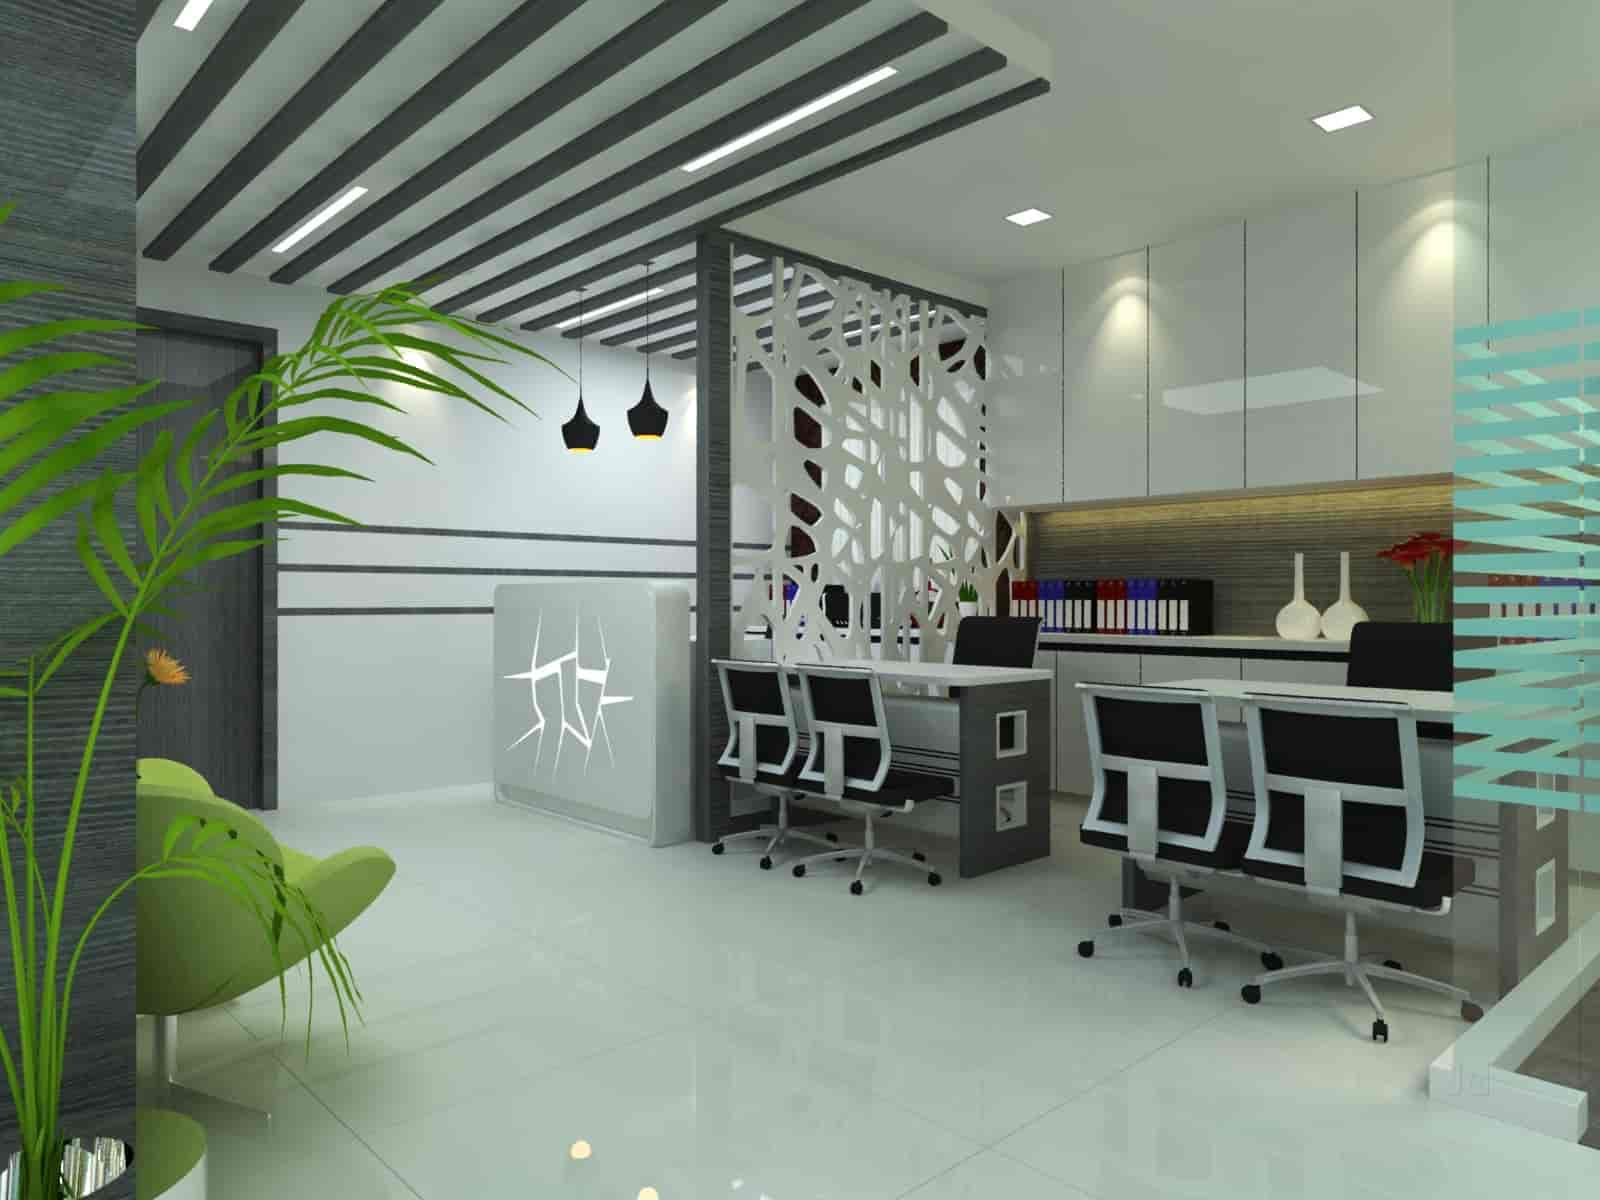 fedisa interior designer interior designer mumbai best interior design sites freelance interior designer jobs in chennai